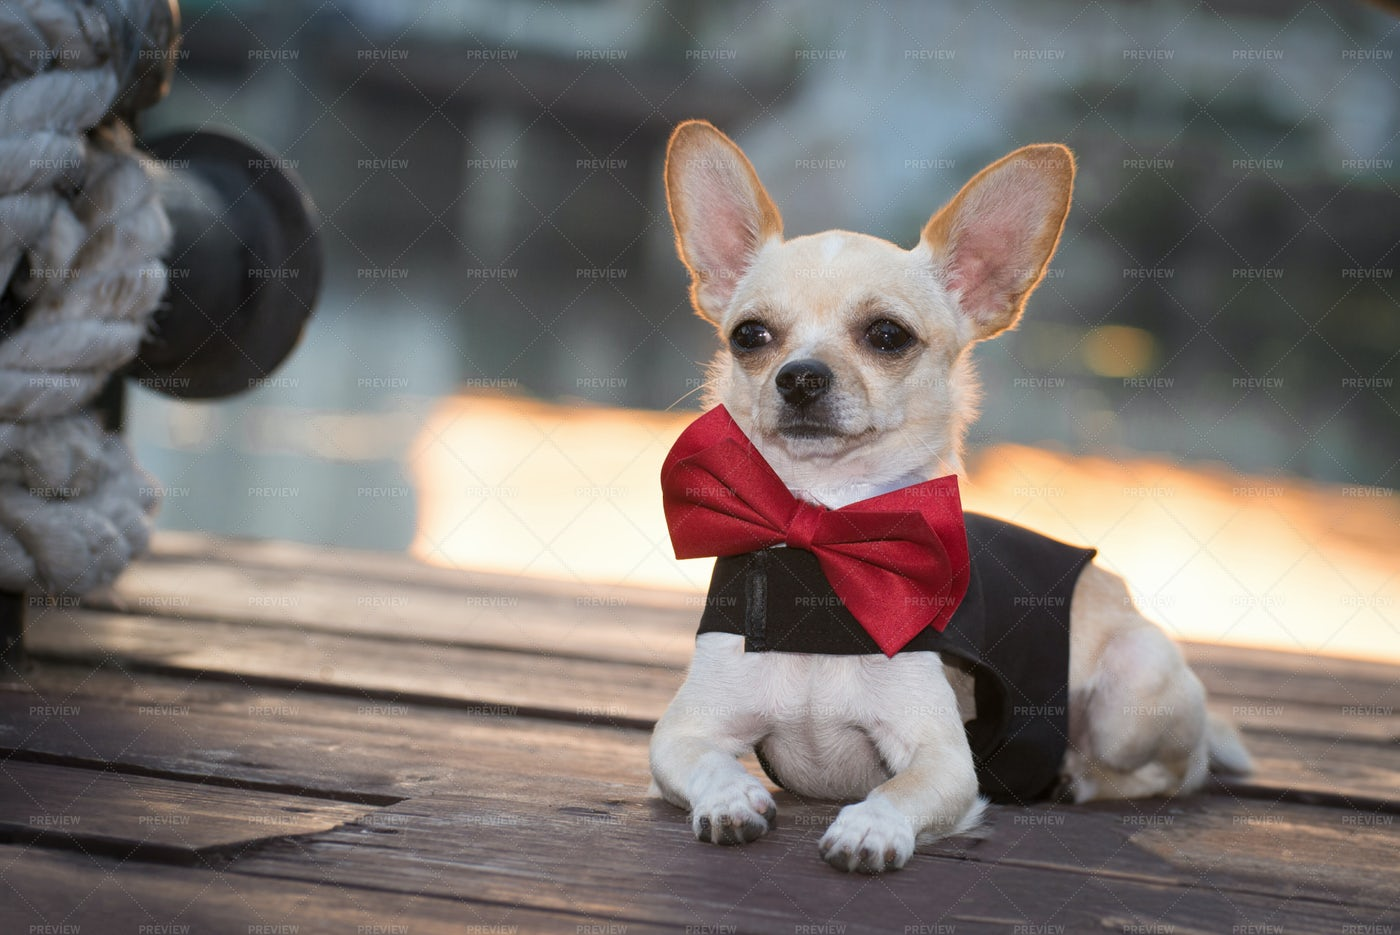 Dog In A Bow Tie: Stock Photos